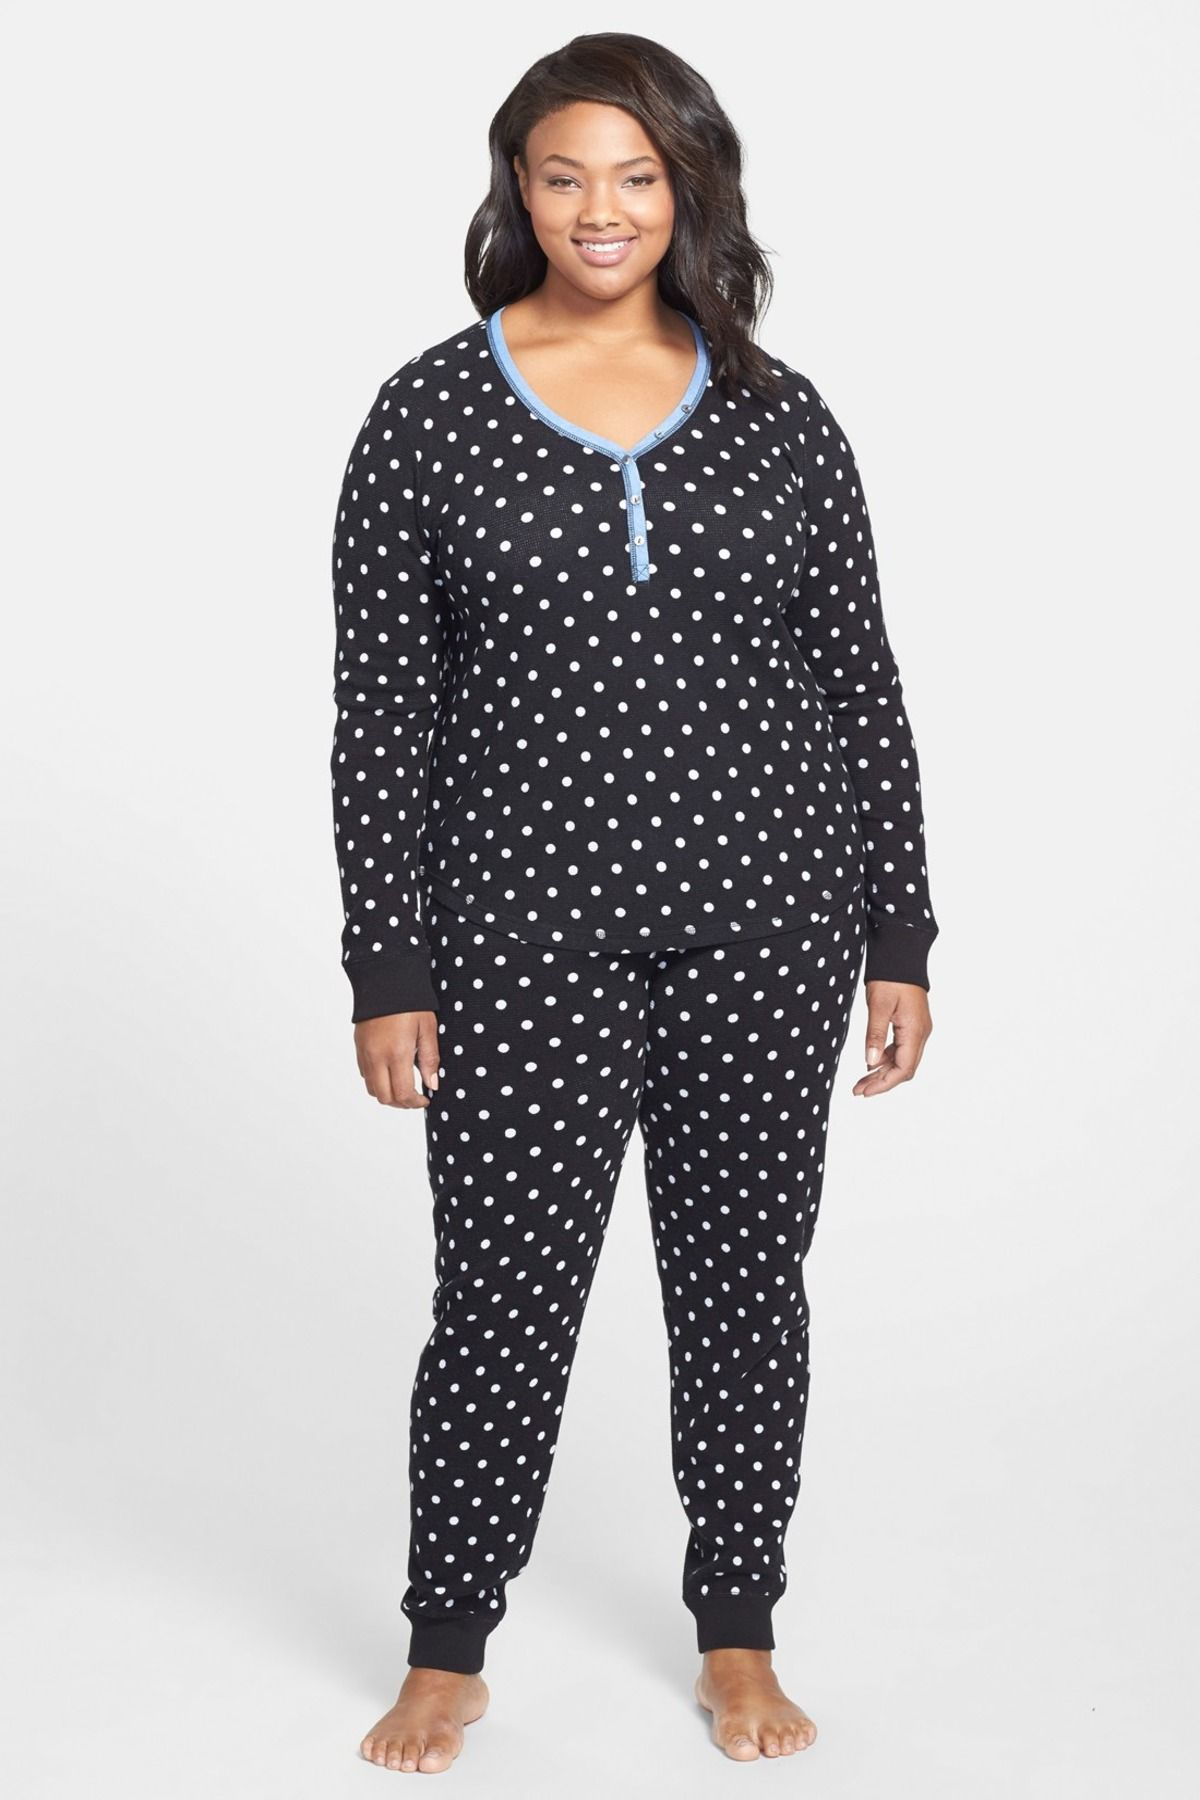 Long Sleeve Thermal Pajamas (Plus Size) by PJ SALVAGE on  nordstrom rack 3bbbbff5a